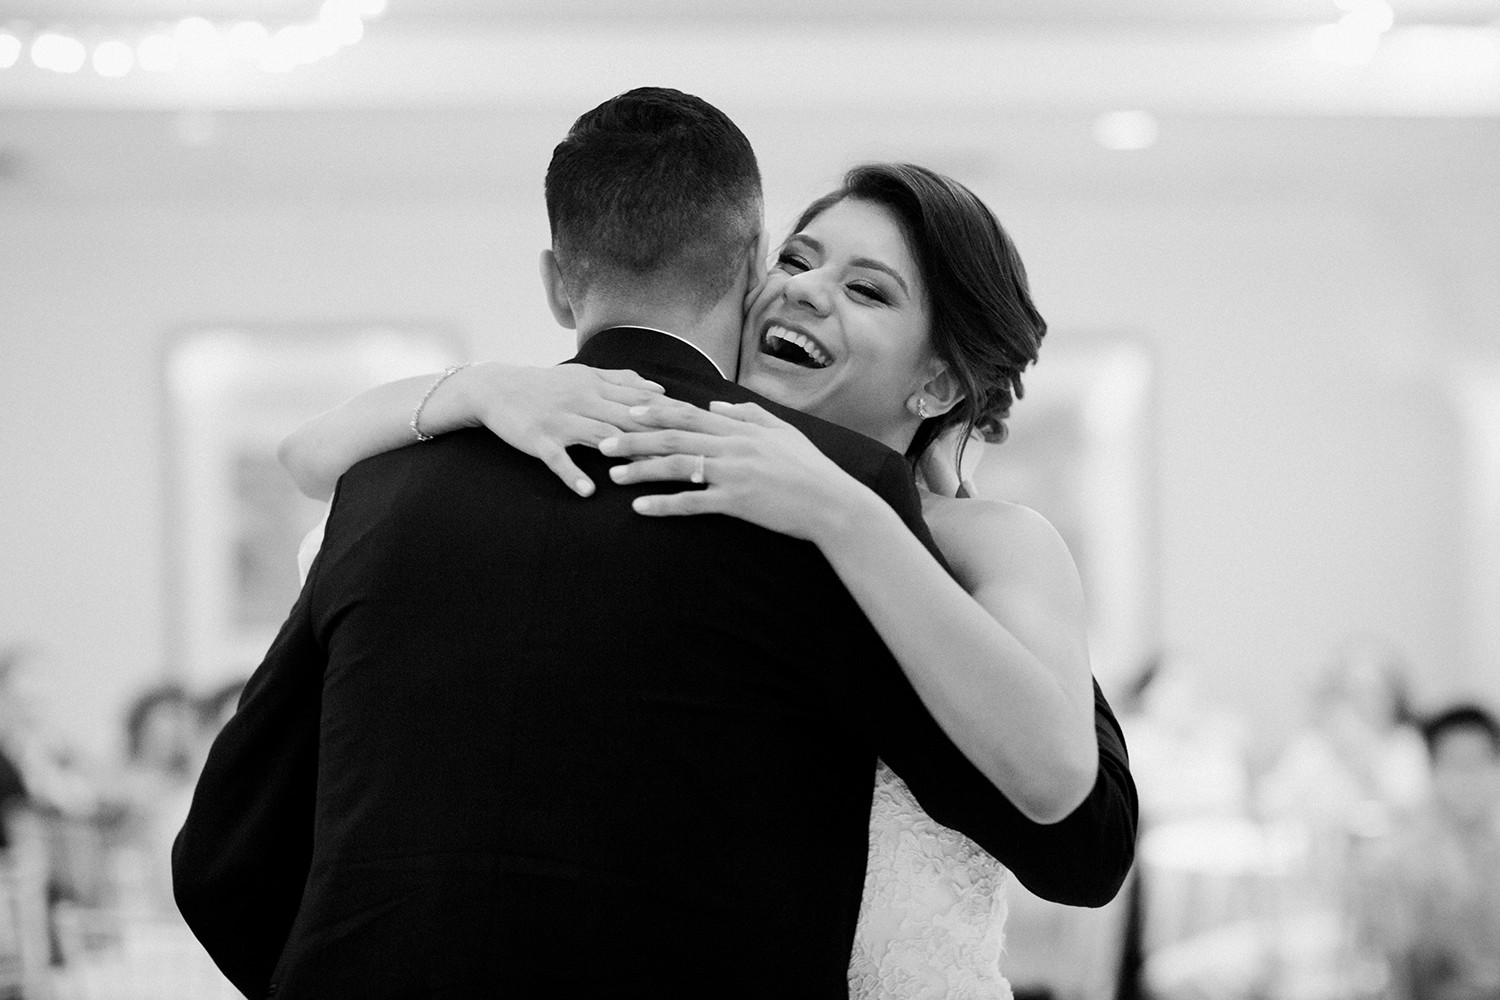 A candid fun moment of a bride hugging her groom during their romantic first dance.